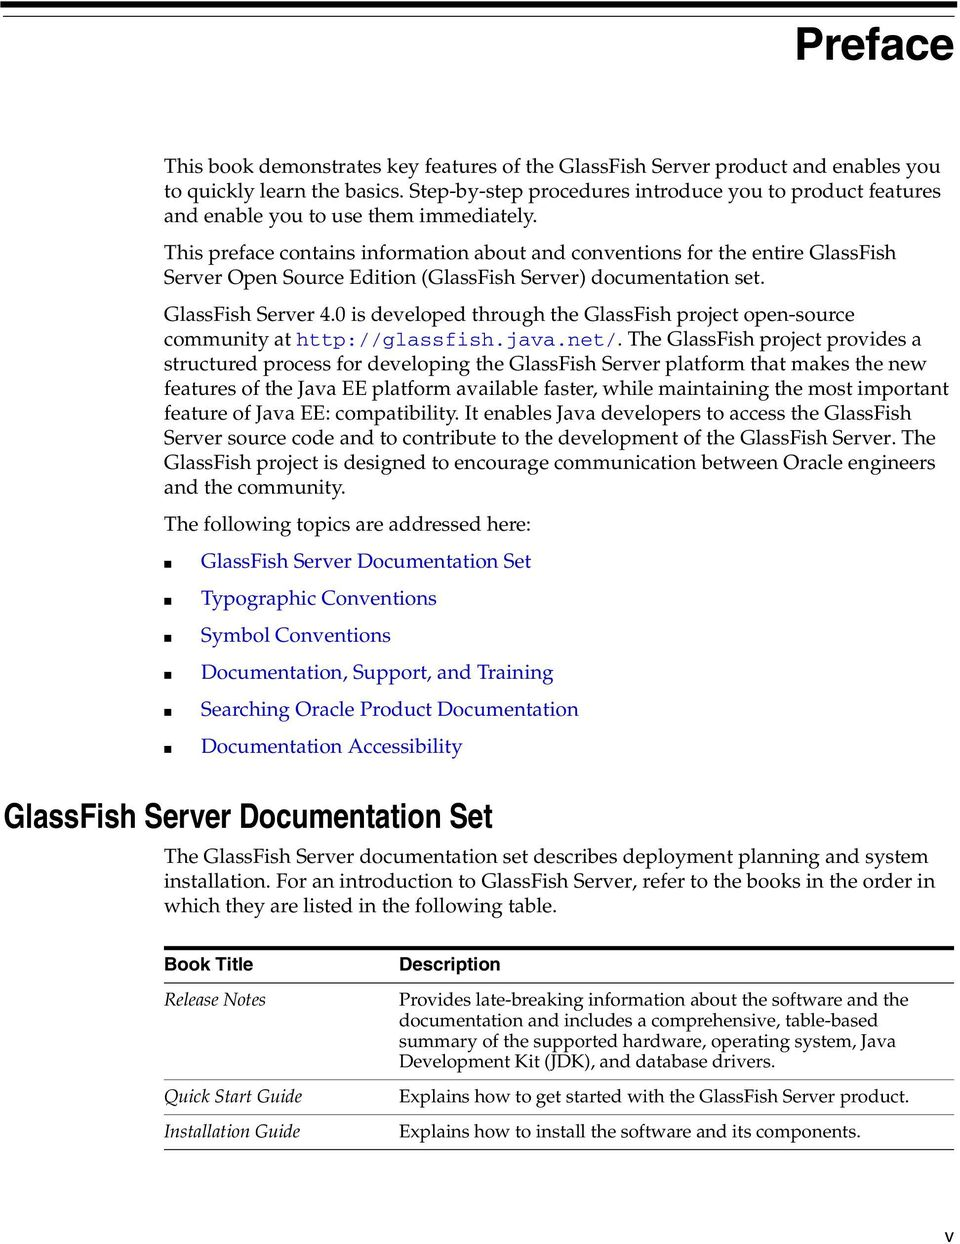 This preface contains information about and conventions for the entire GlassFish Server Open Source Edition (GlassFish Server) documentation set. GlassFish Server 4.